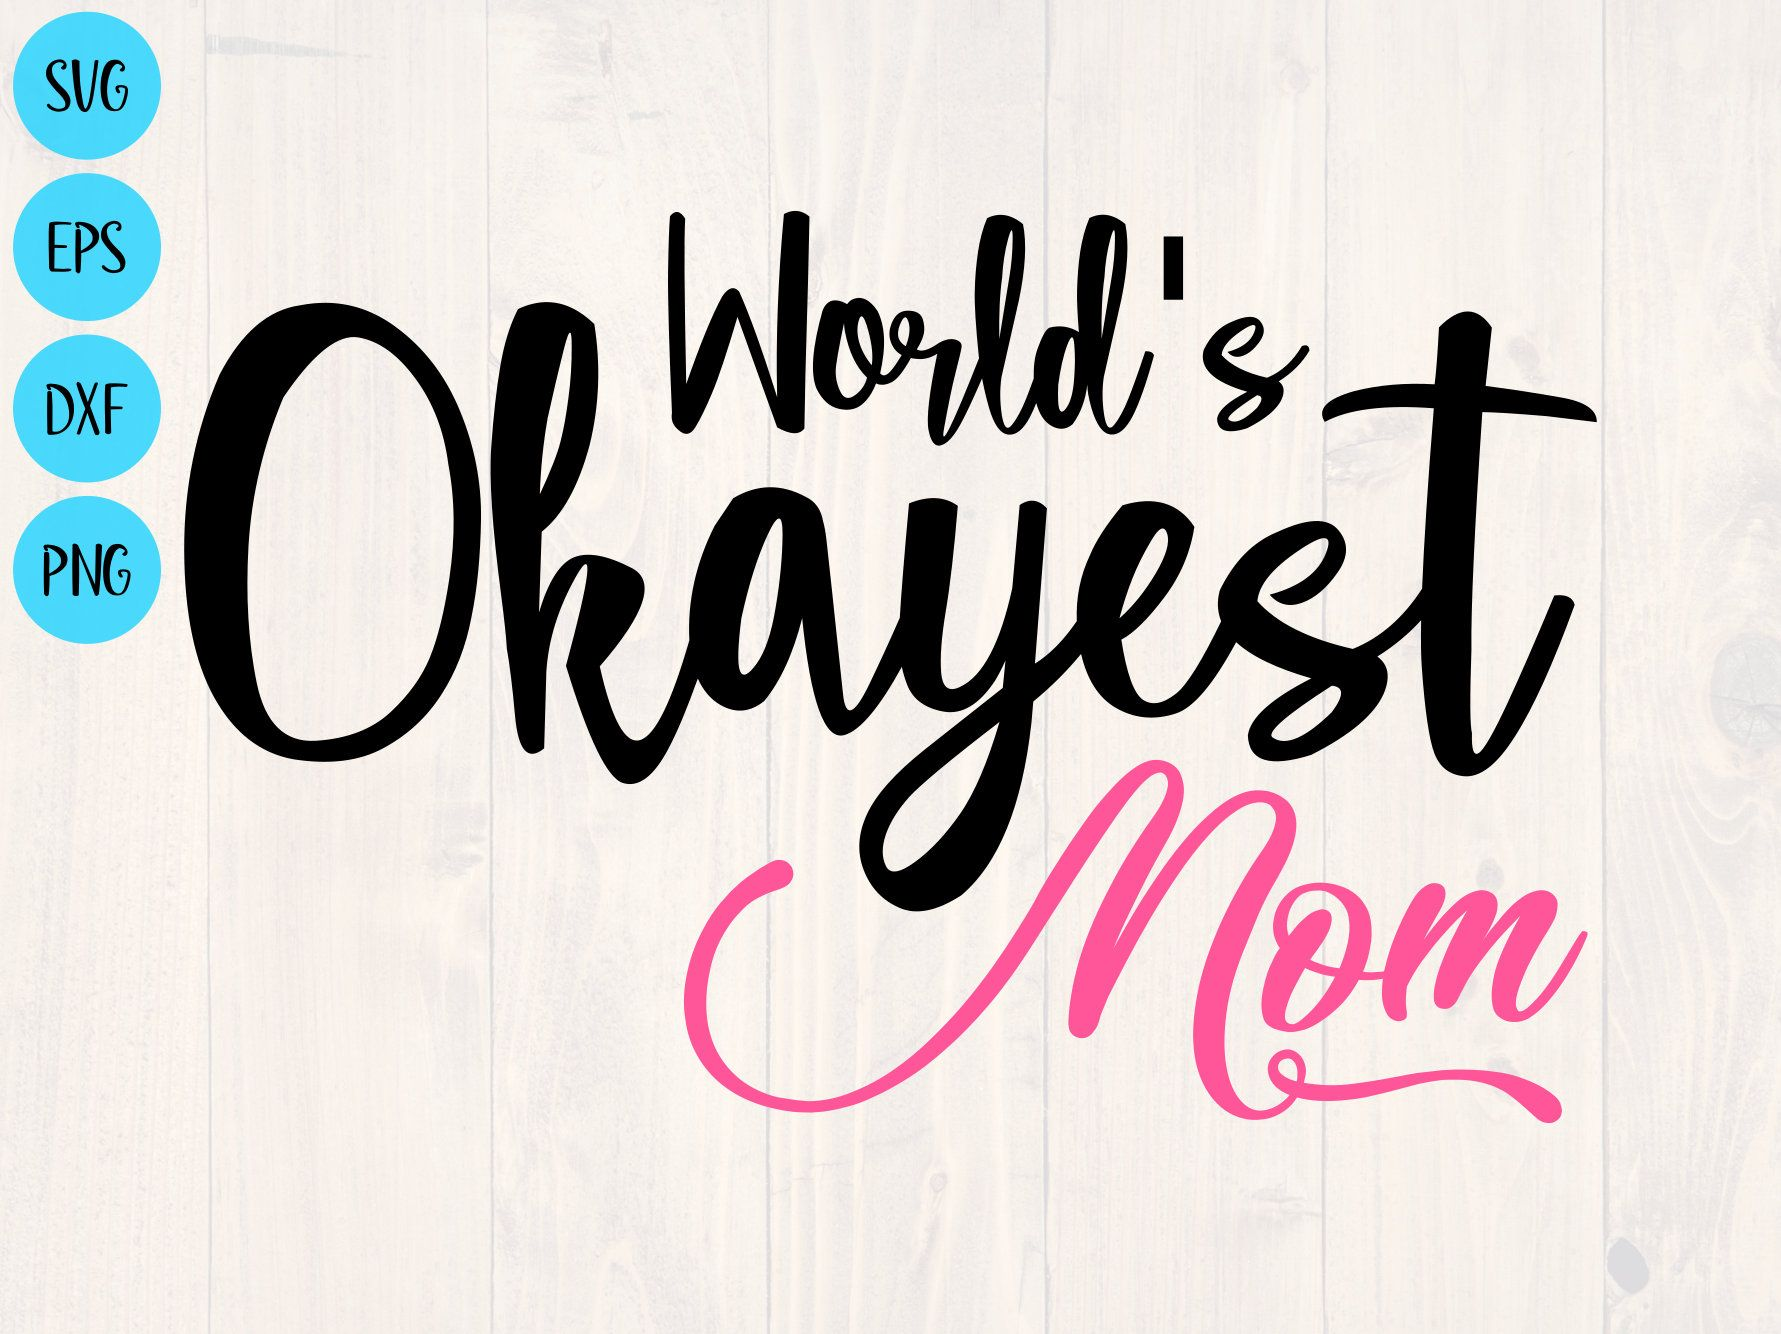 World S Okayest Mom Svg Png Eps And Dxf Shirt And Cup Etsy Okayest Mom Okayest Cup Design